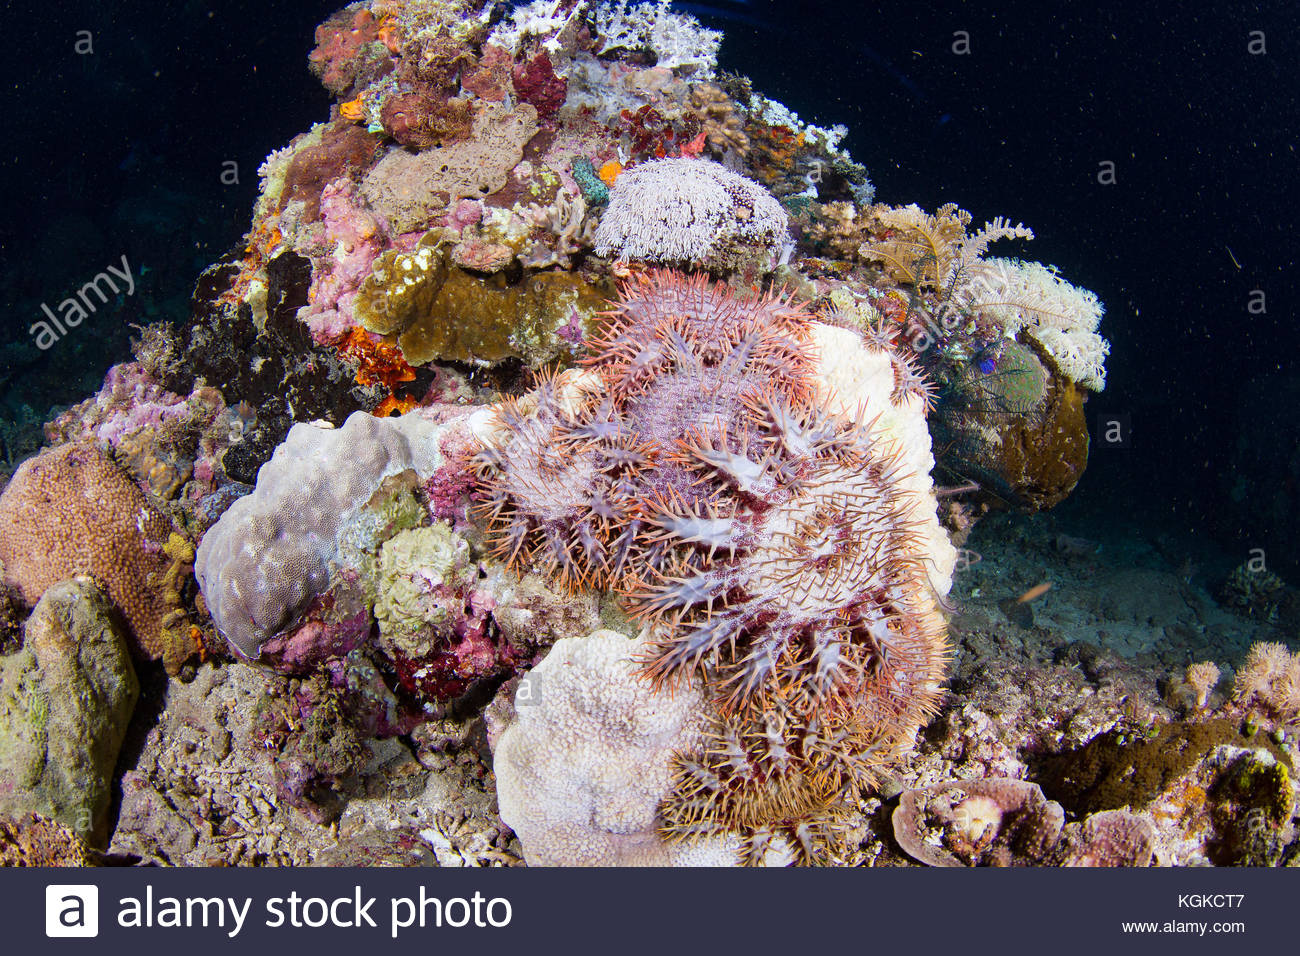 Crown of thorn starfish, Acanthaster planci, feeding on a coral reef at night. - Stock Image